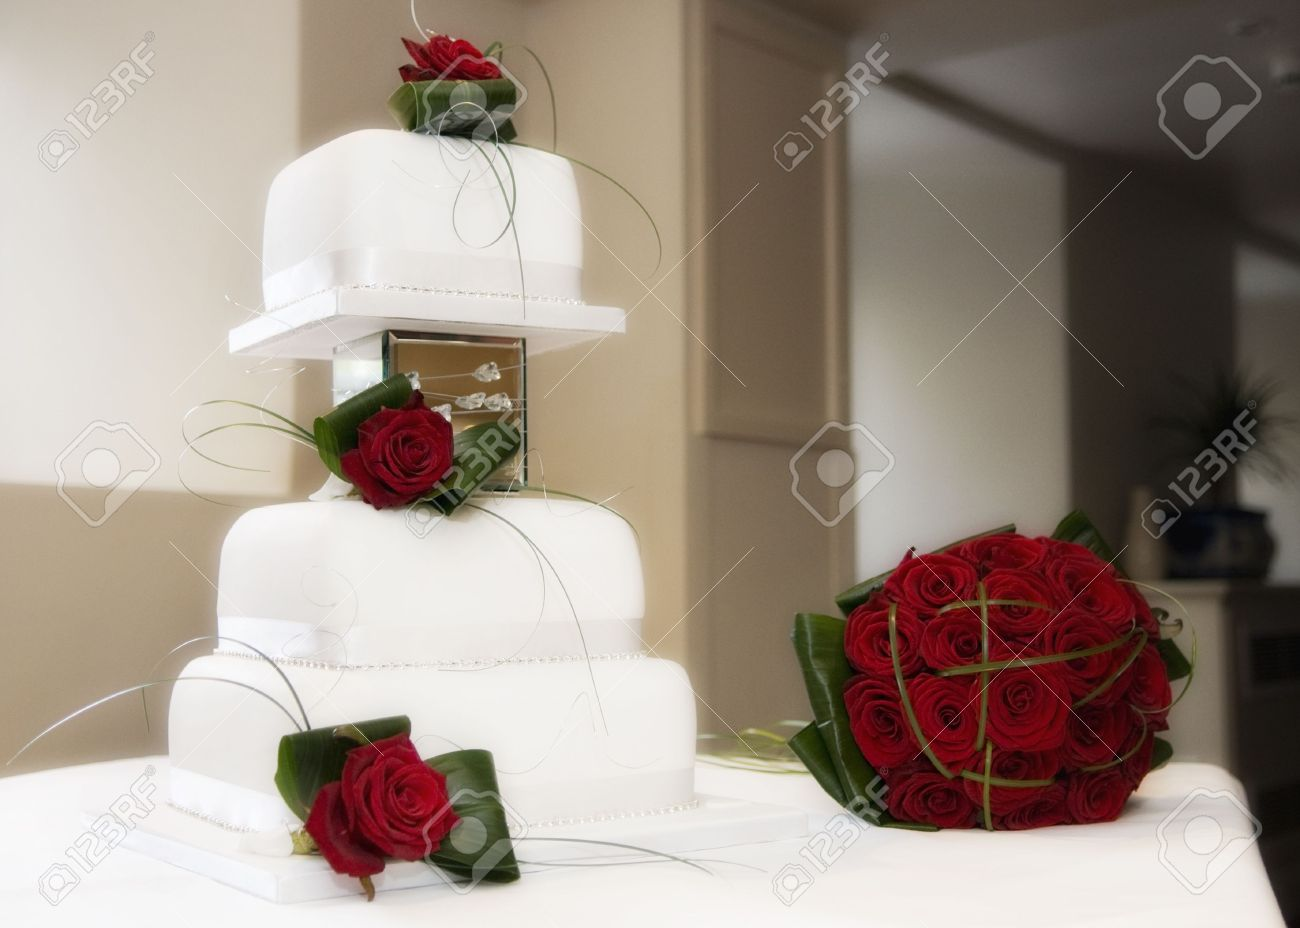 Beautiful Wedding Cake And Red Roses Stock Photo Picture And